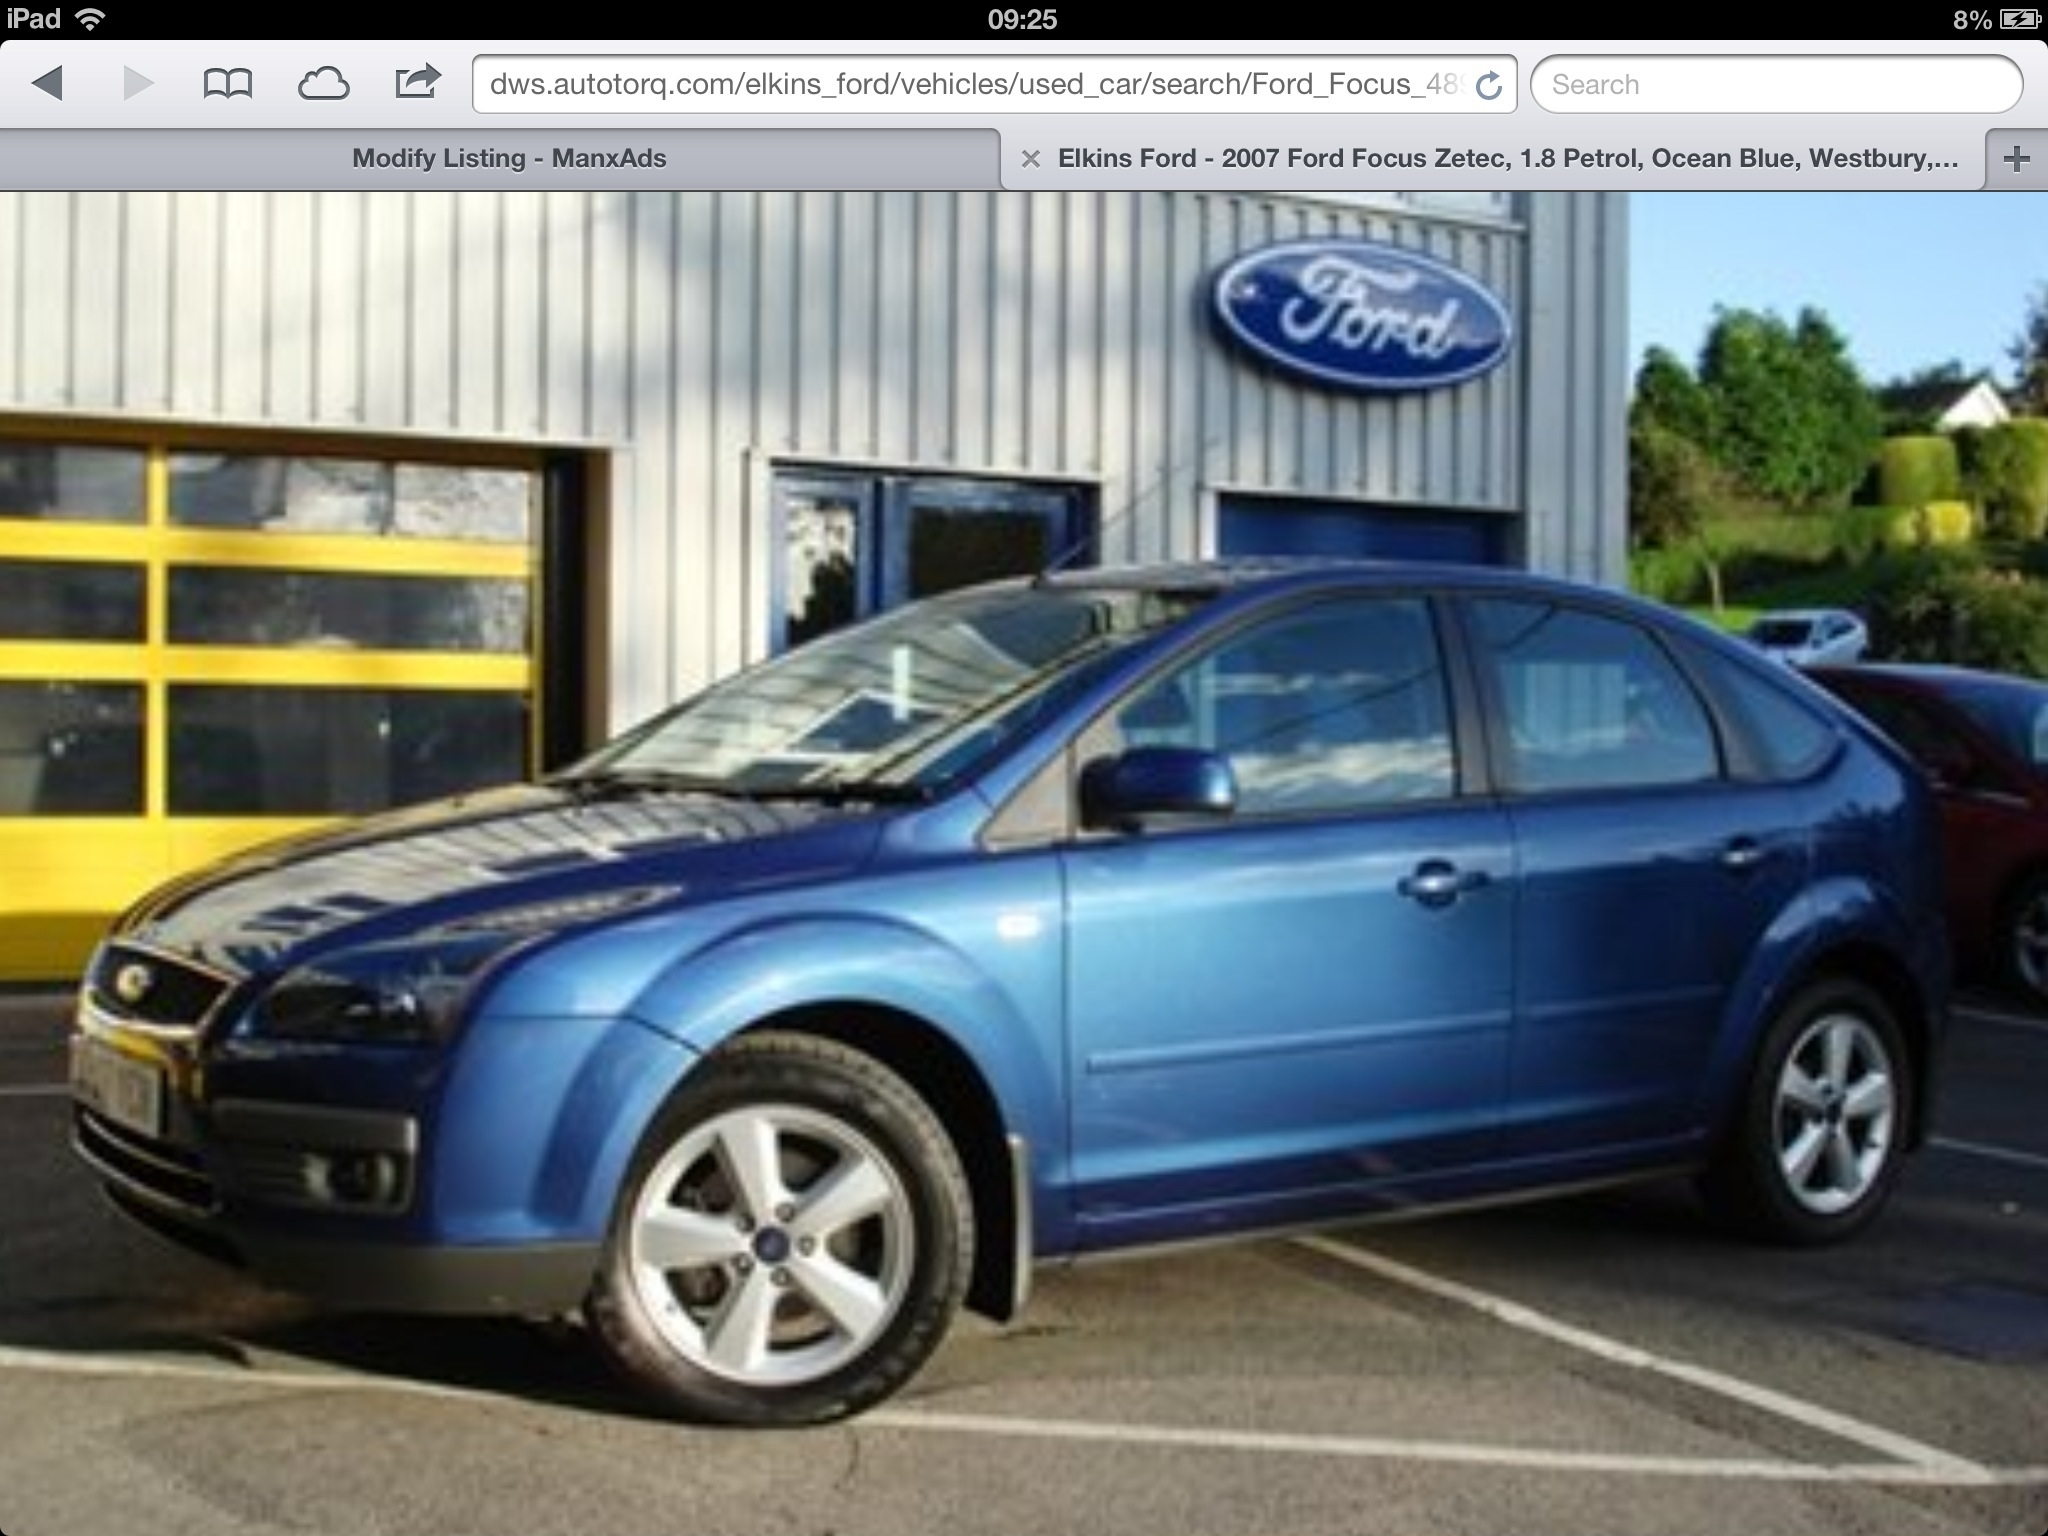 Ford Focus zetec 1.6 from private